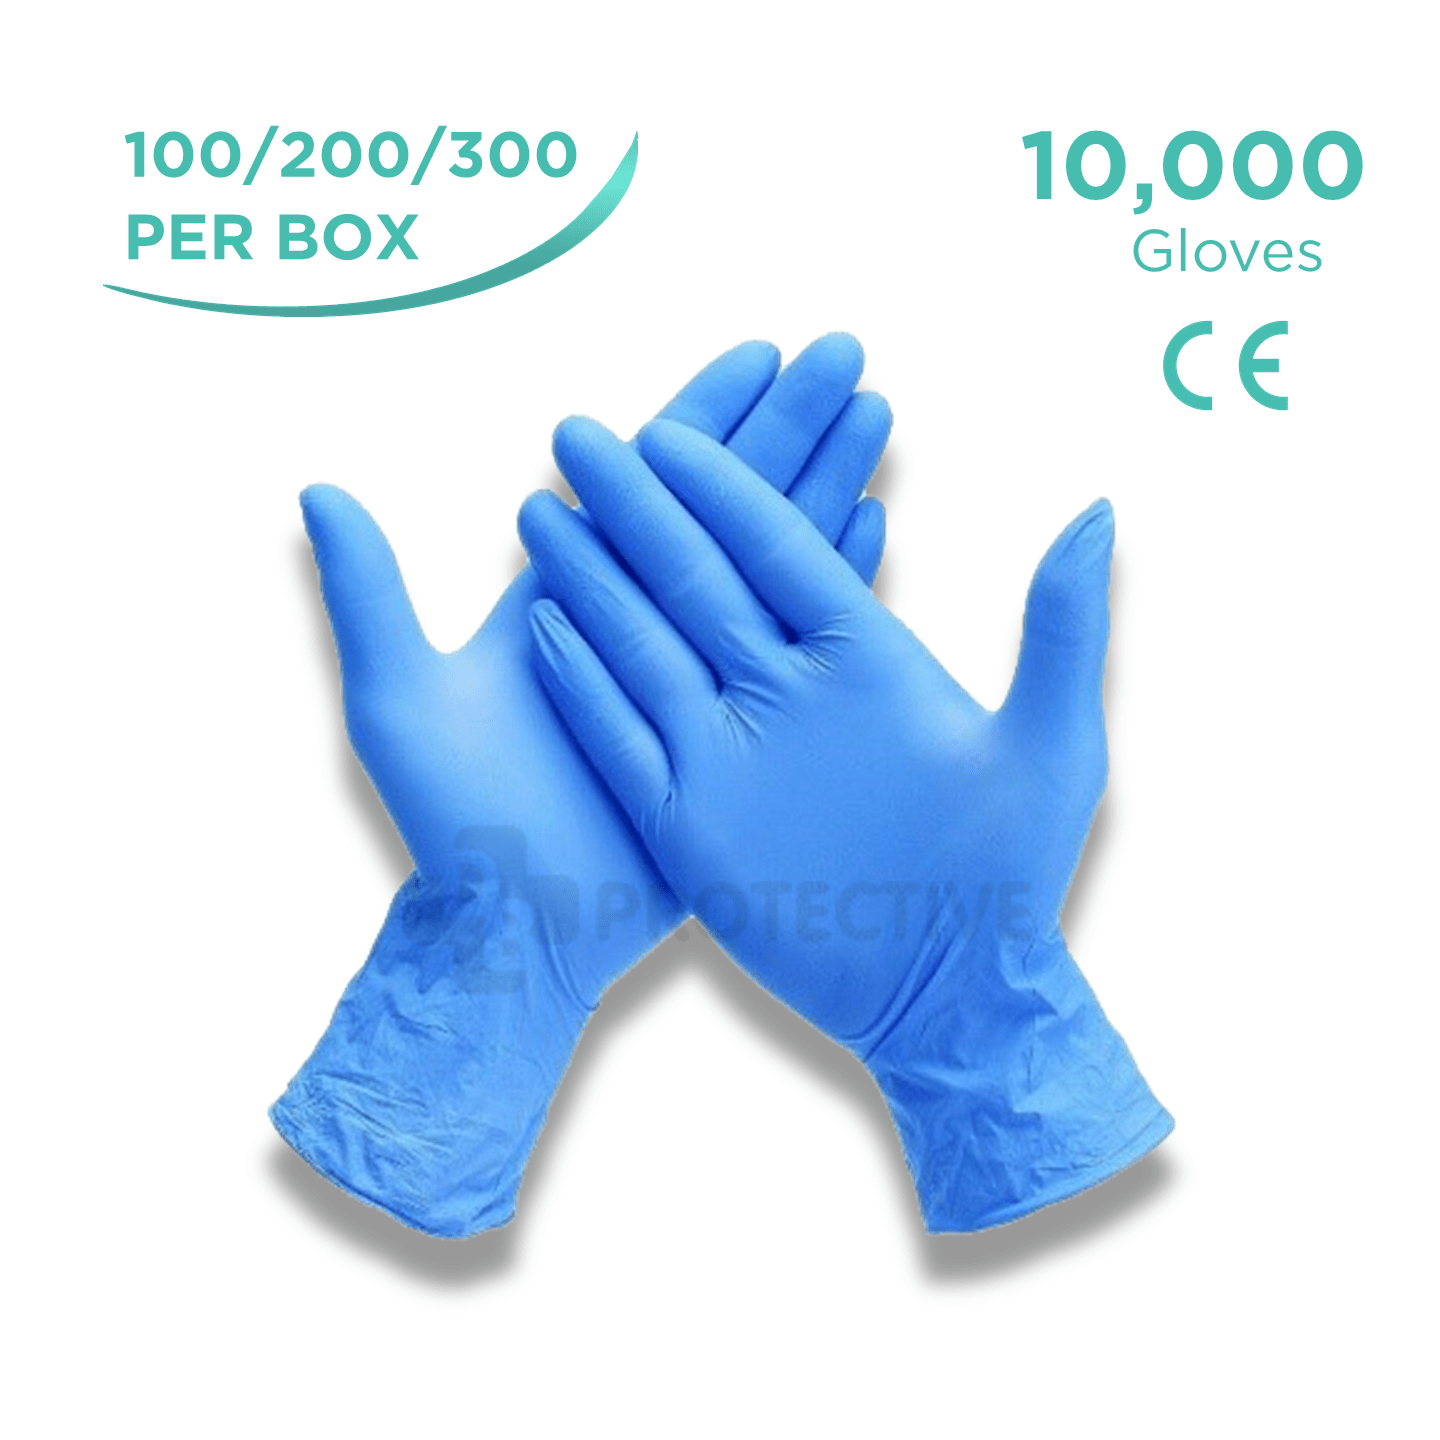 Blue Nitrile Examination Gloves - Pack of 10,000 - USA Medical Supply - DB Protective